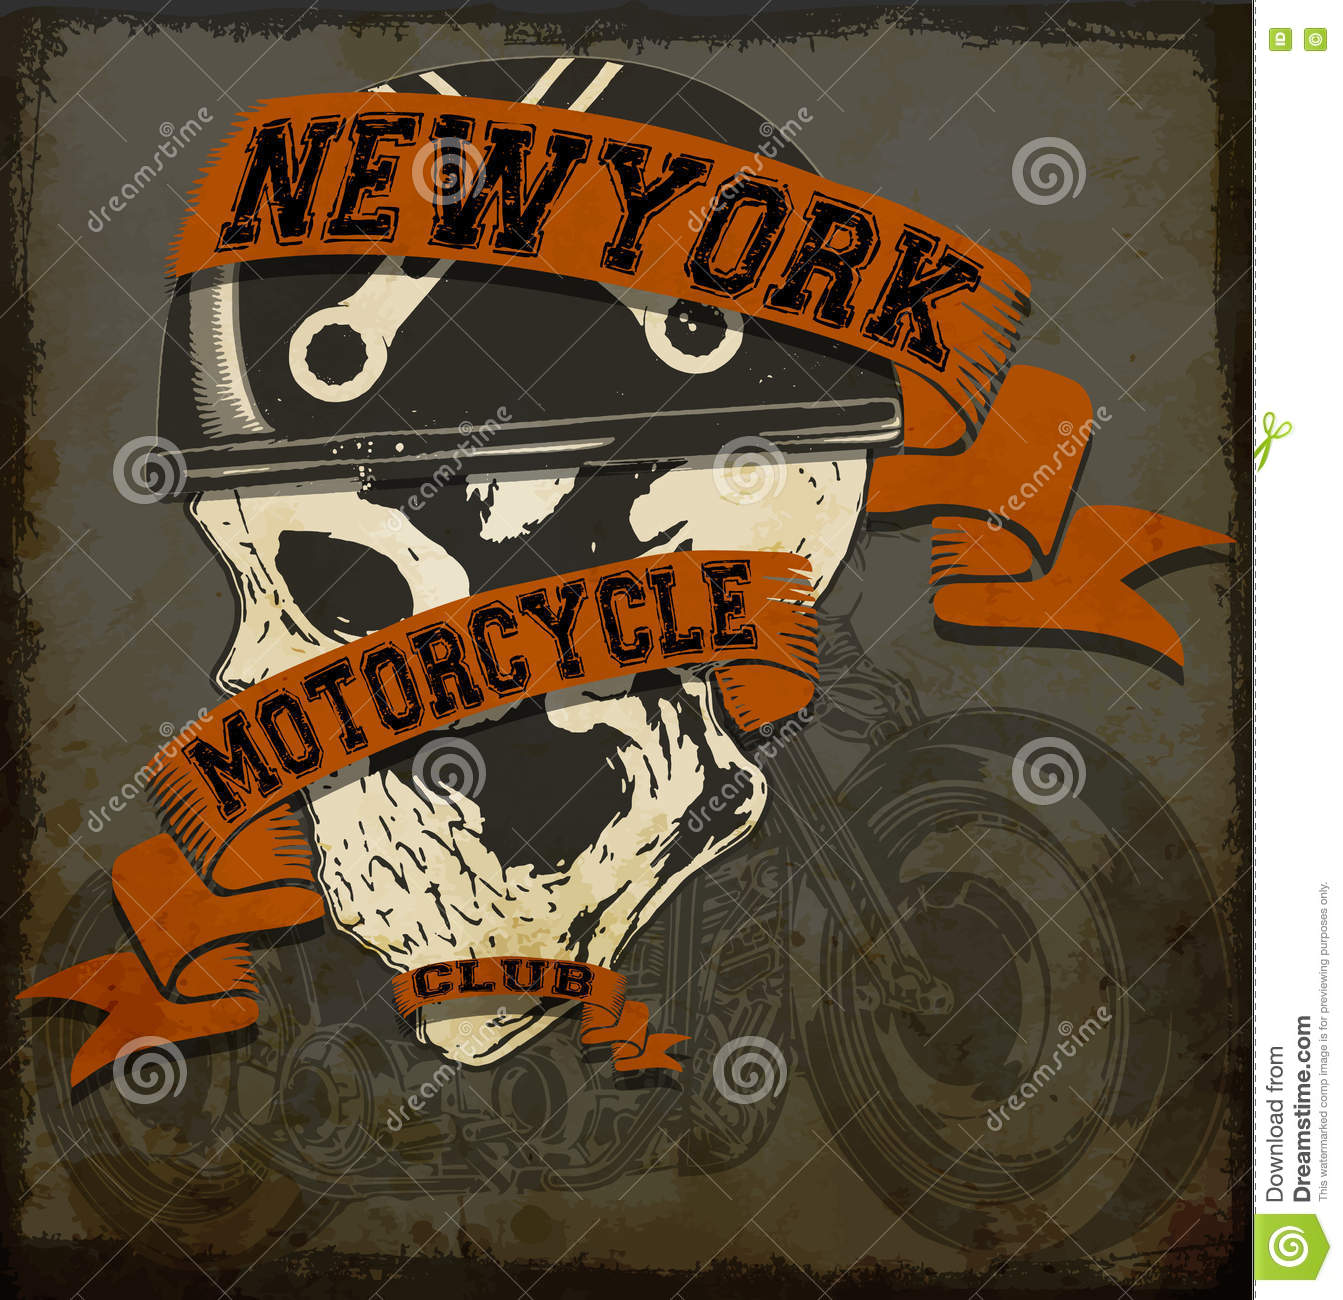 Motorcycle Skull Tee Graphic Design Stock Vector Image 72221423